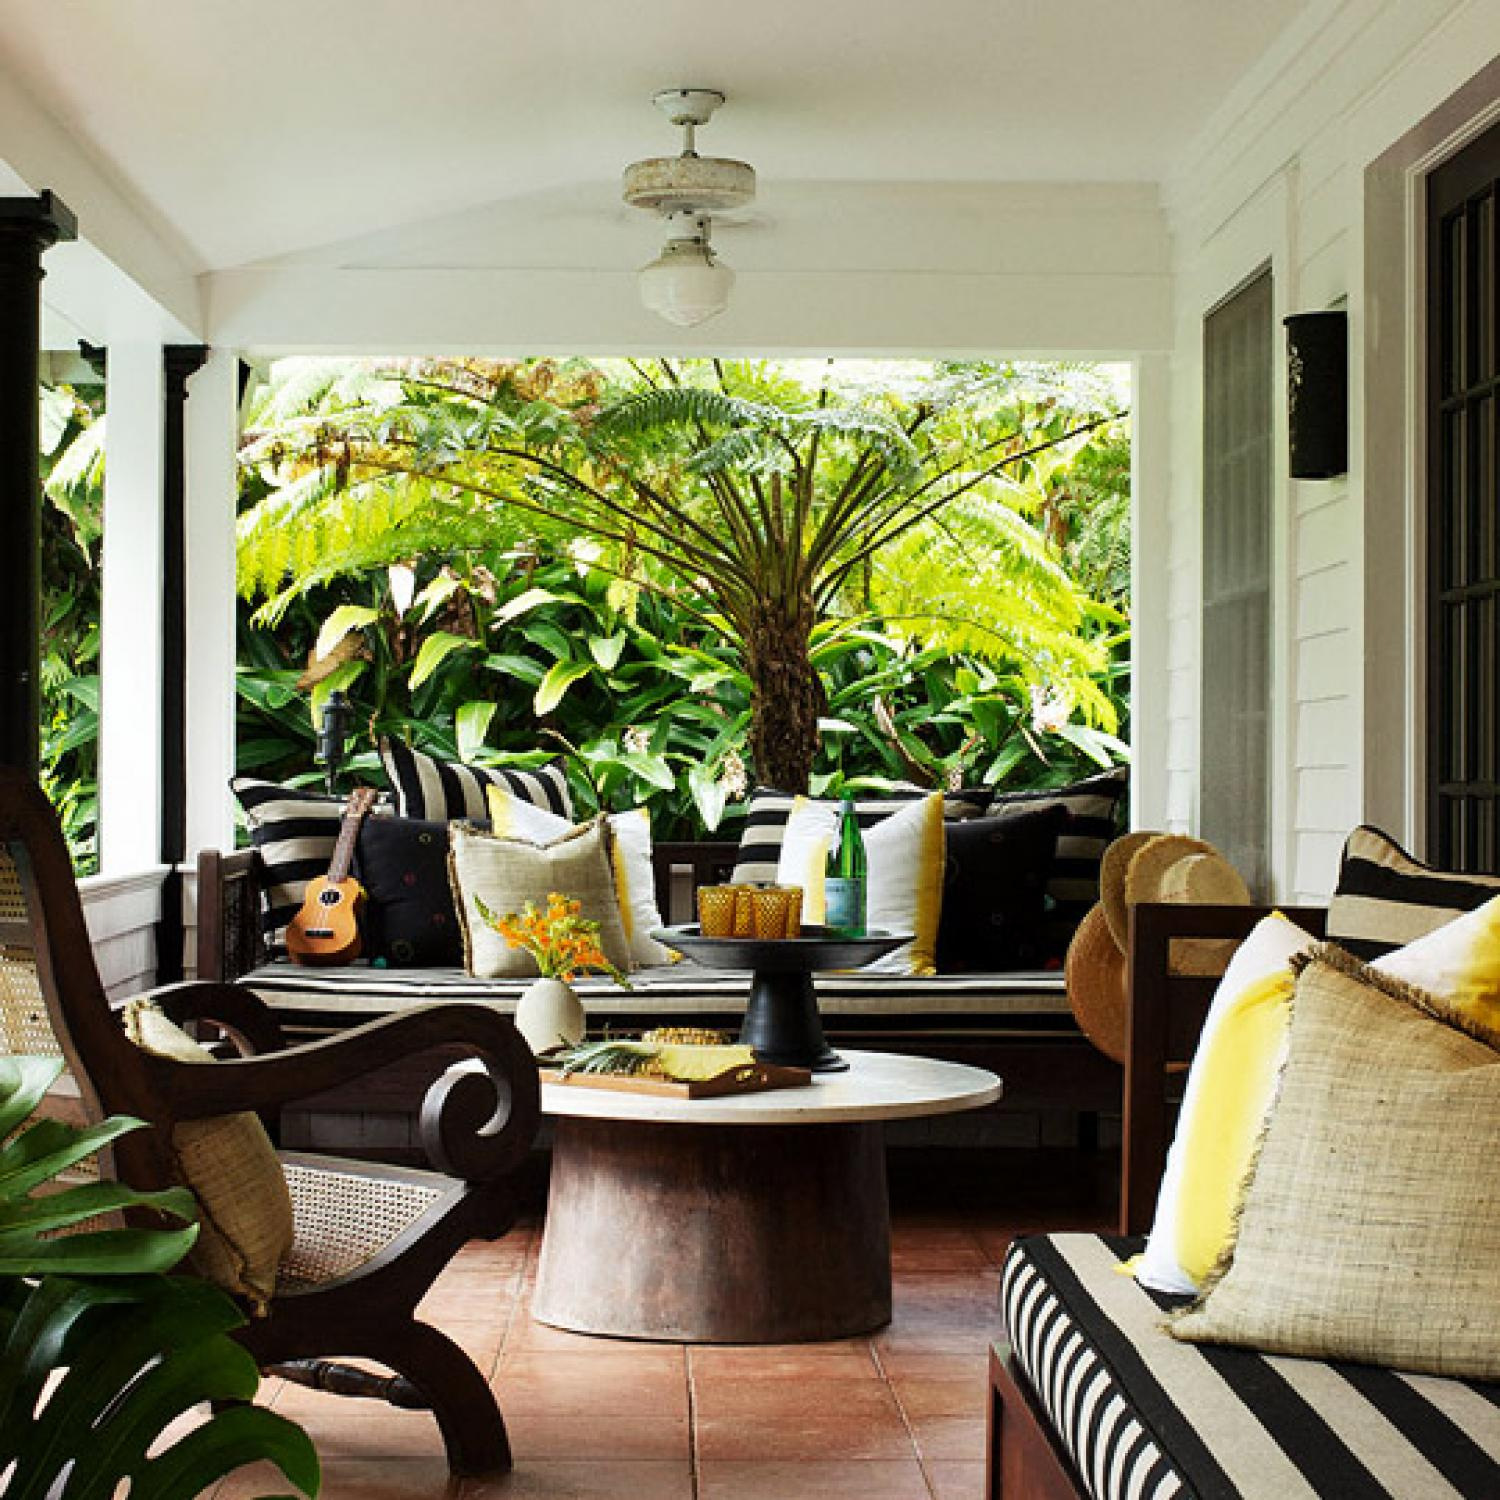 Interior Design For House: Tropical Traditional Home